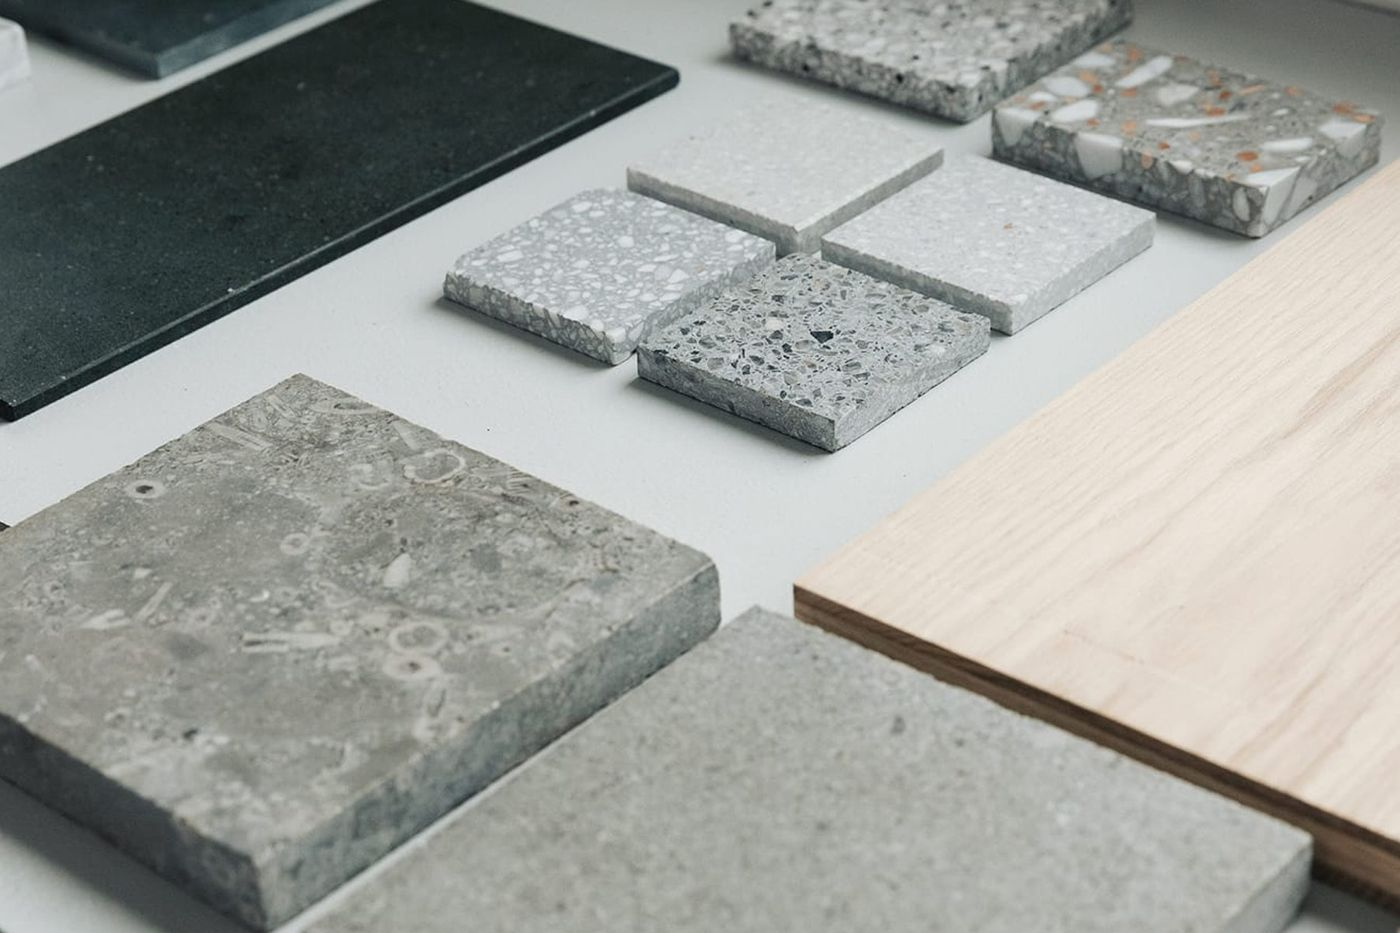 Natural stone, terrazzo, steamed beech timber and woven carpet material samples in From Works studio.